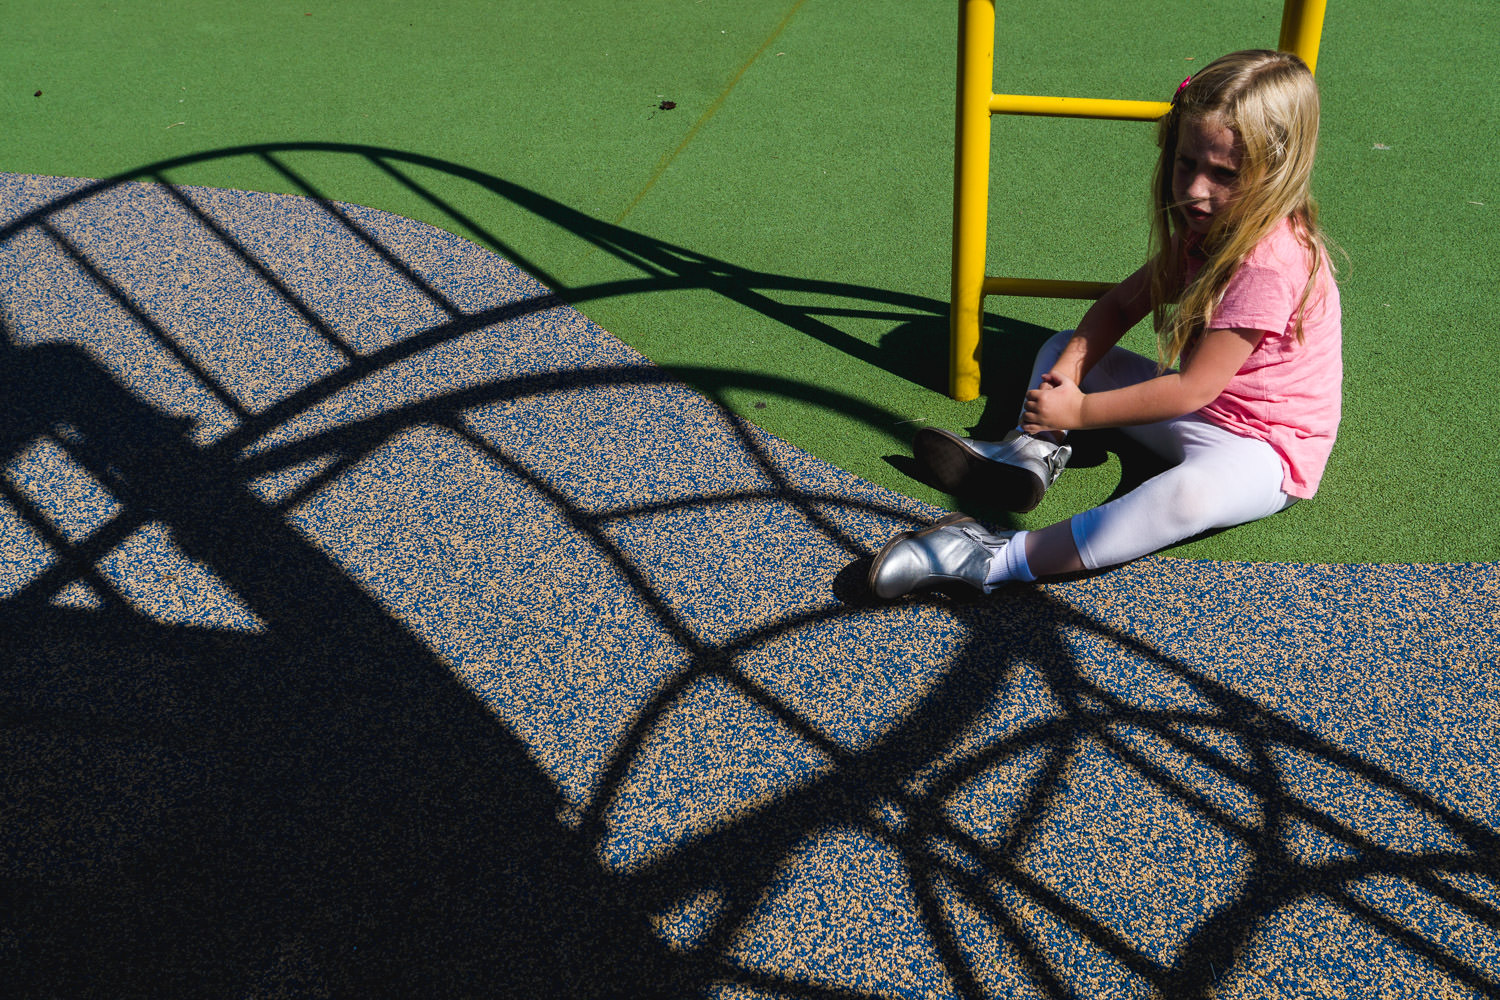 A little girl sits on the ground at the playground.